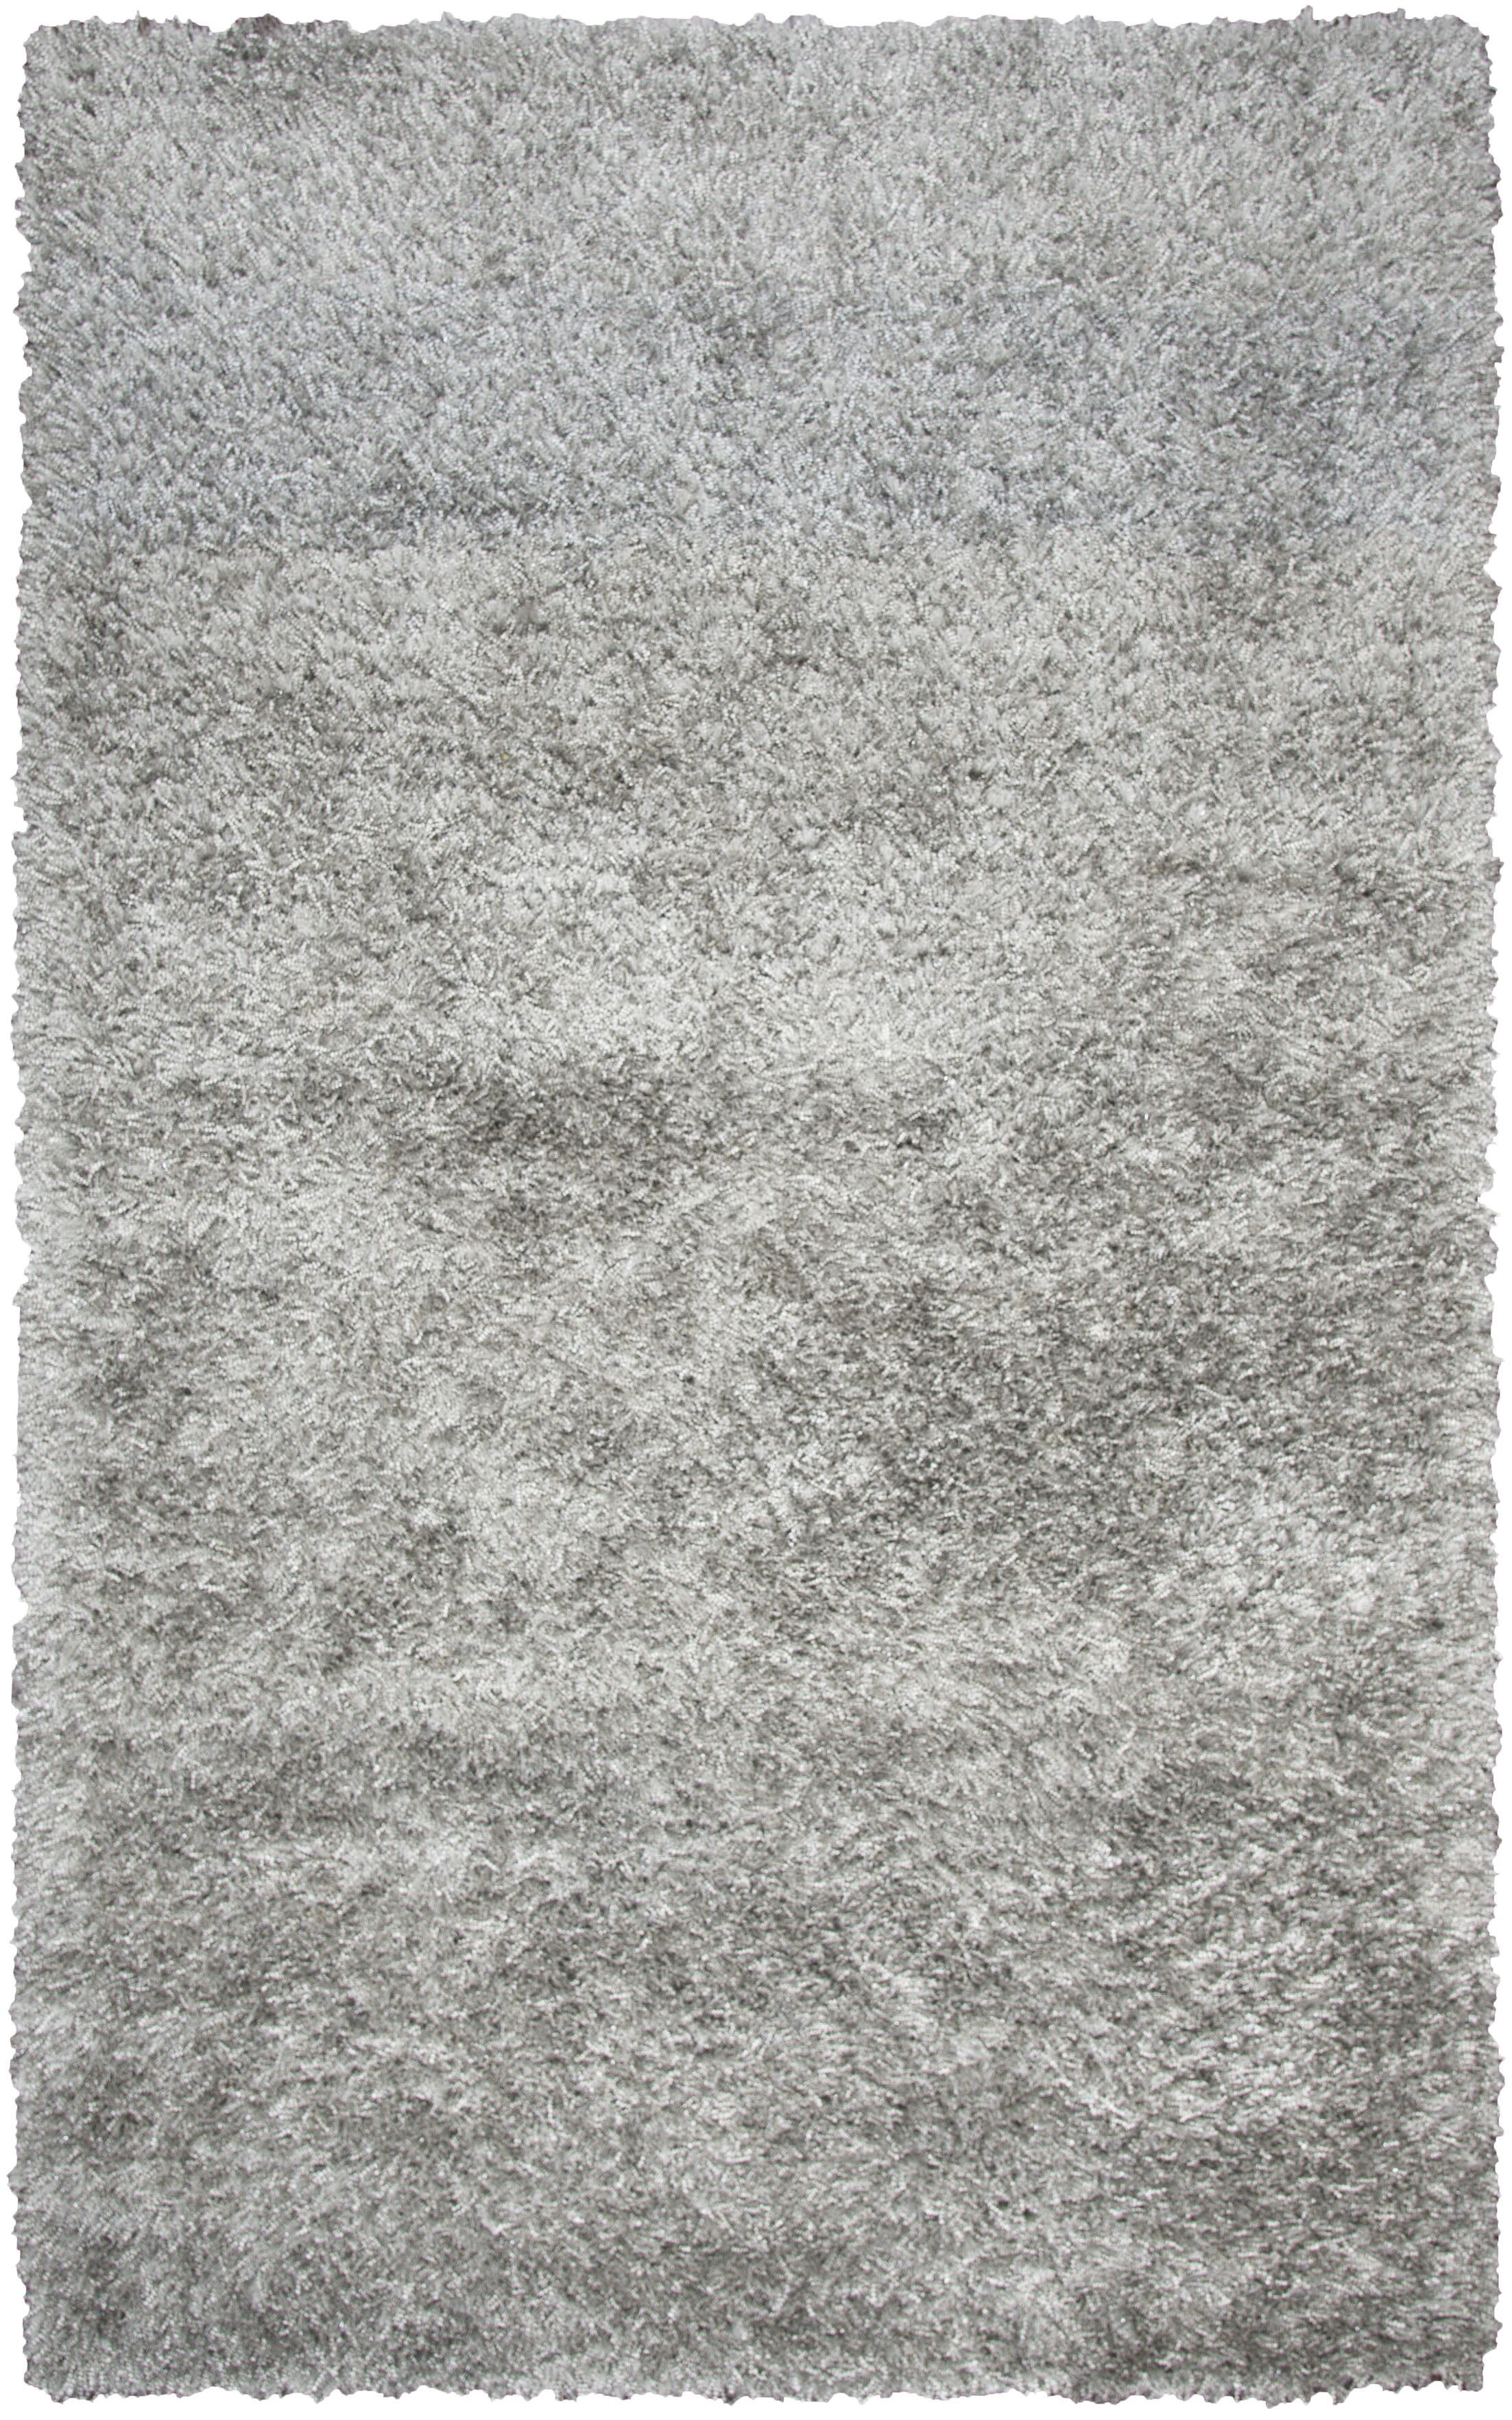 Villegas Hand-Tufted Gray Area Rug Rug Size: Rectangle 5' x 7'6